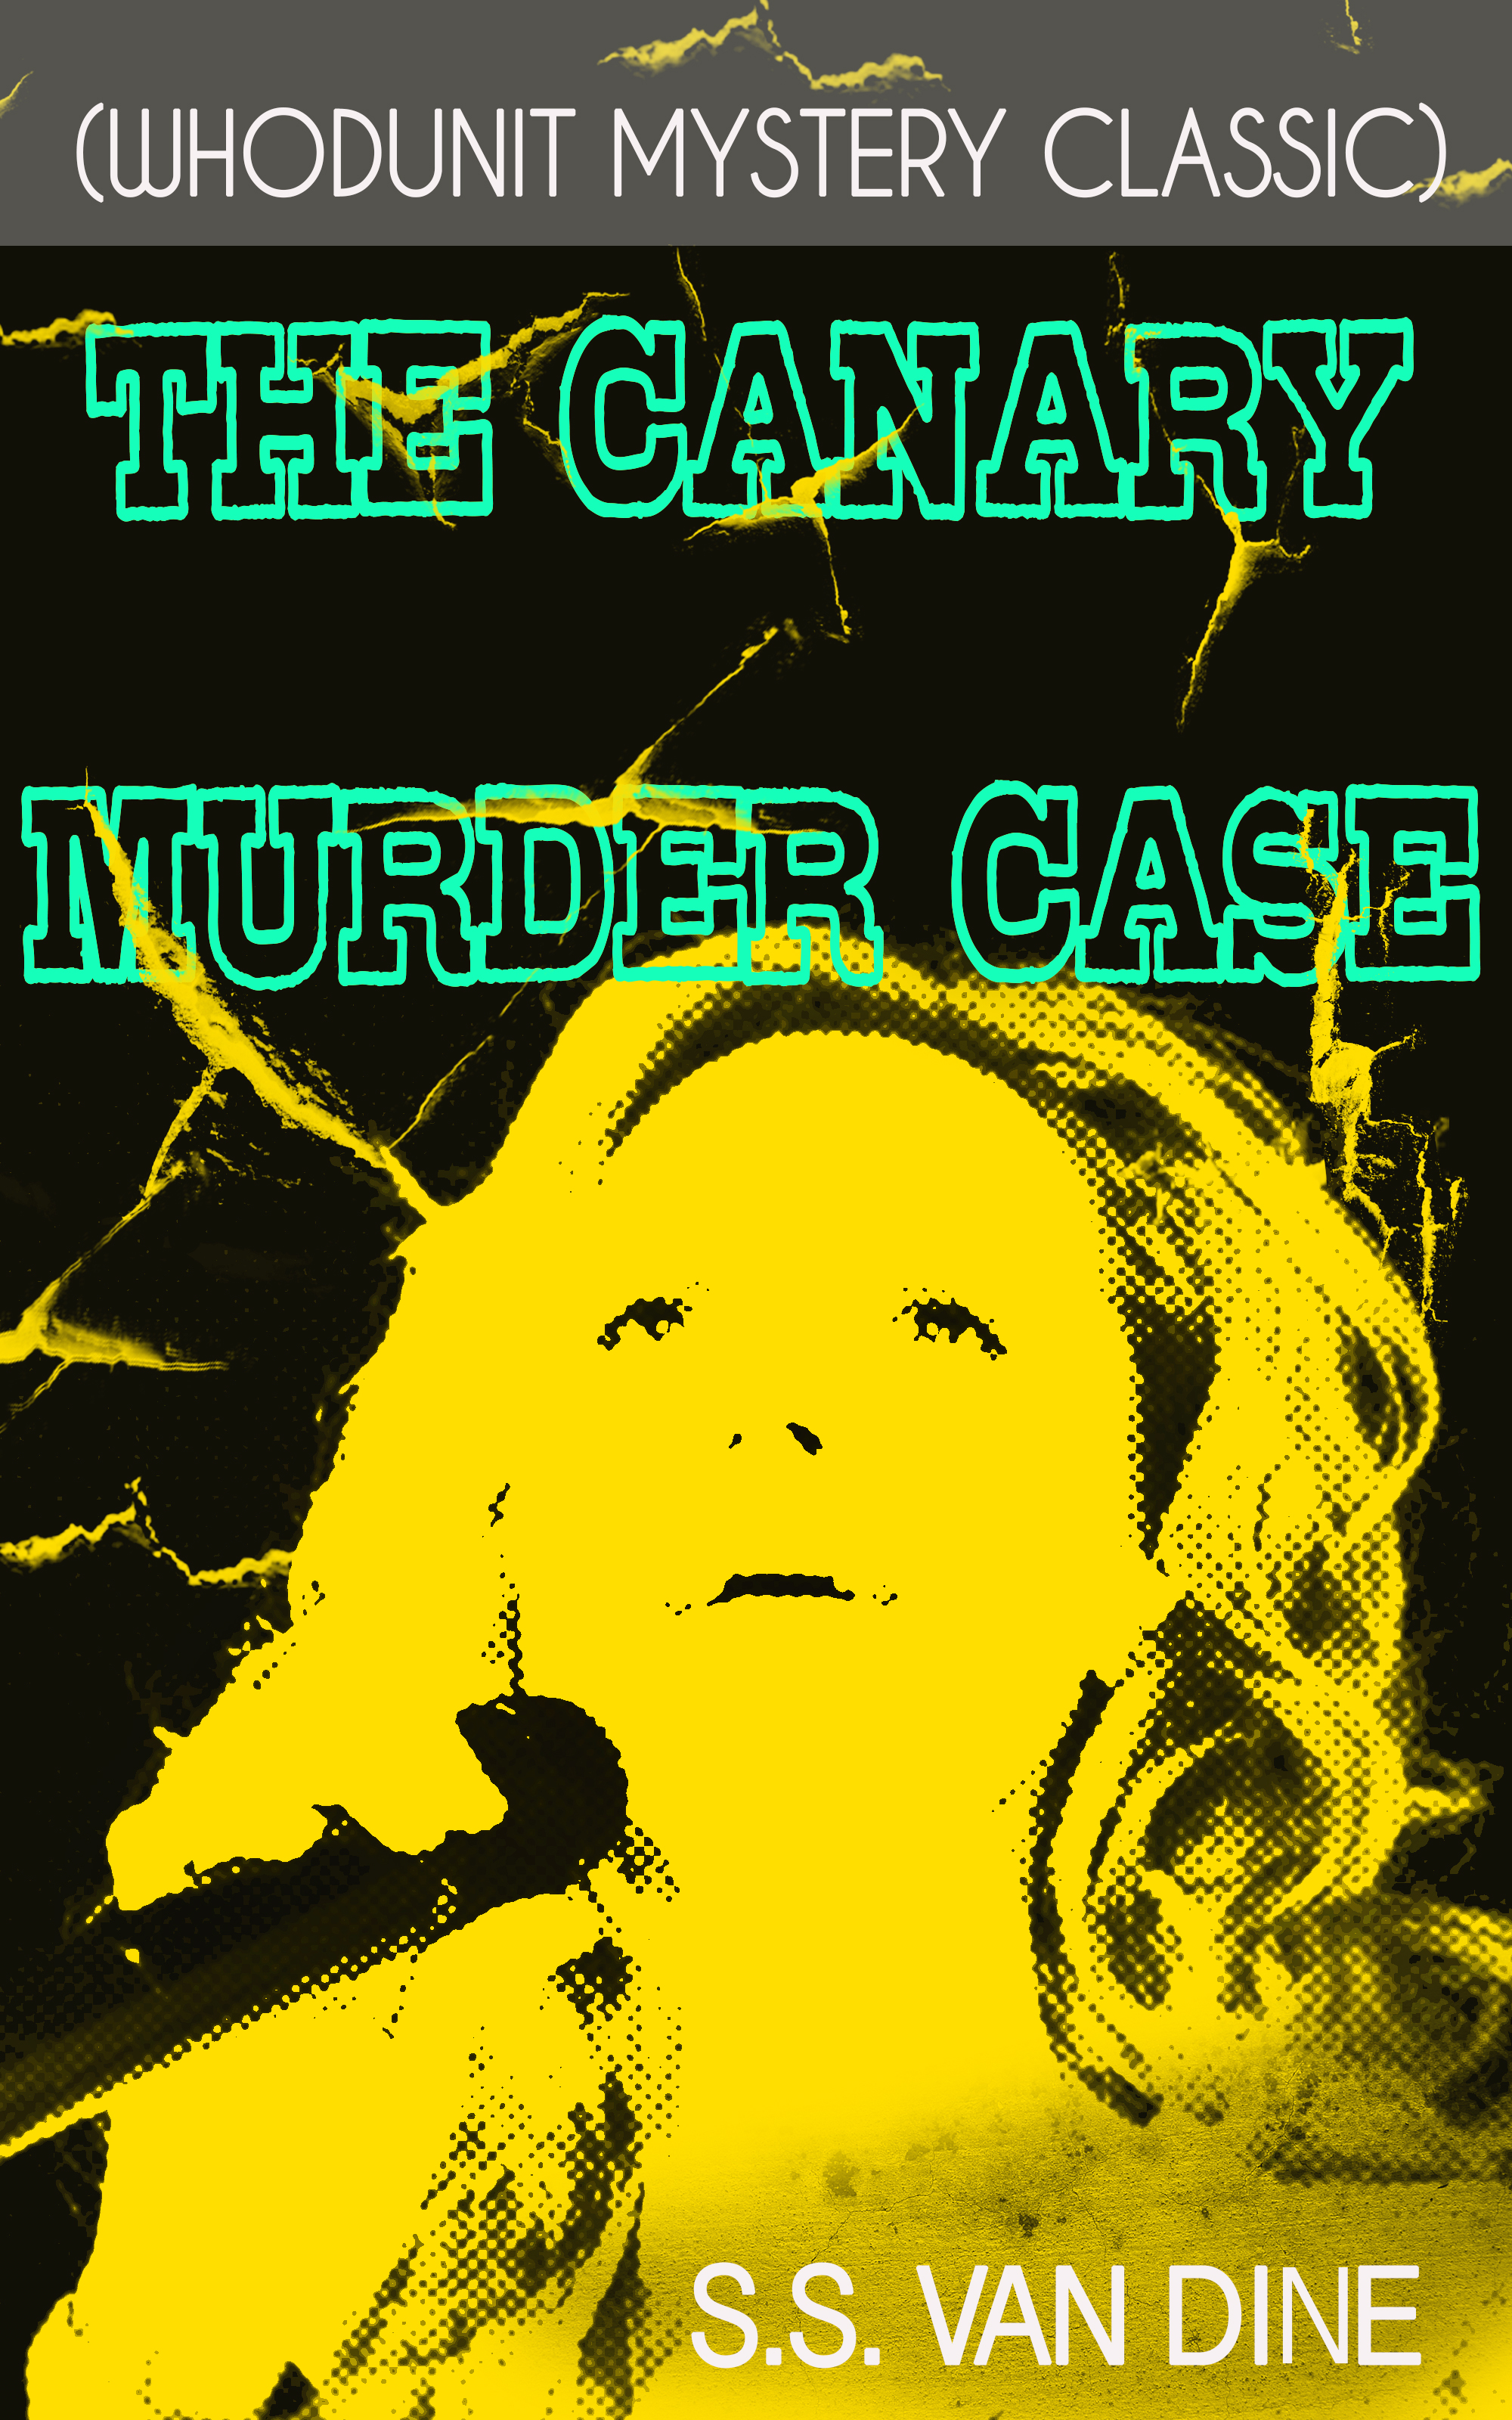 S.S. Van Dine THE CANARY MURDER CASE (Whodunit Mystery Classic) annie haynes the crow s inn tragedy murder mystery classic